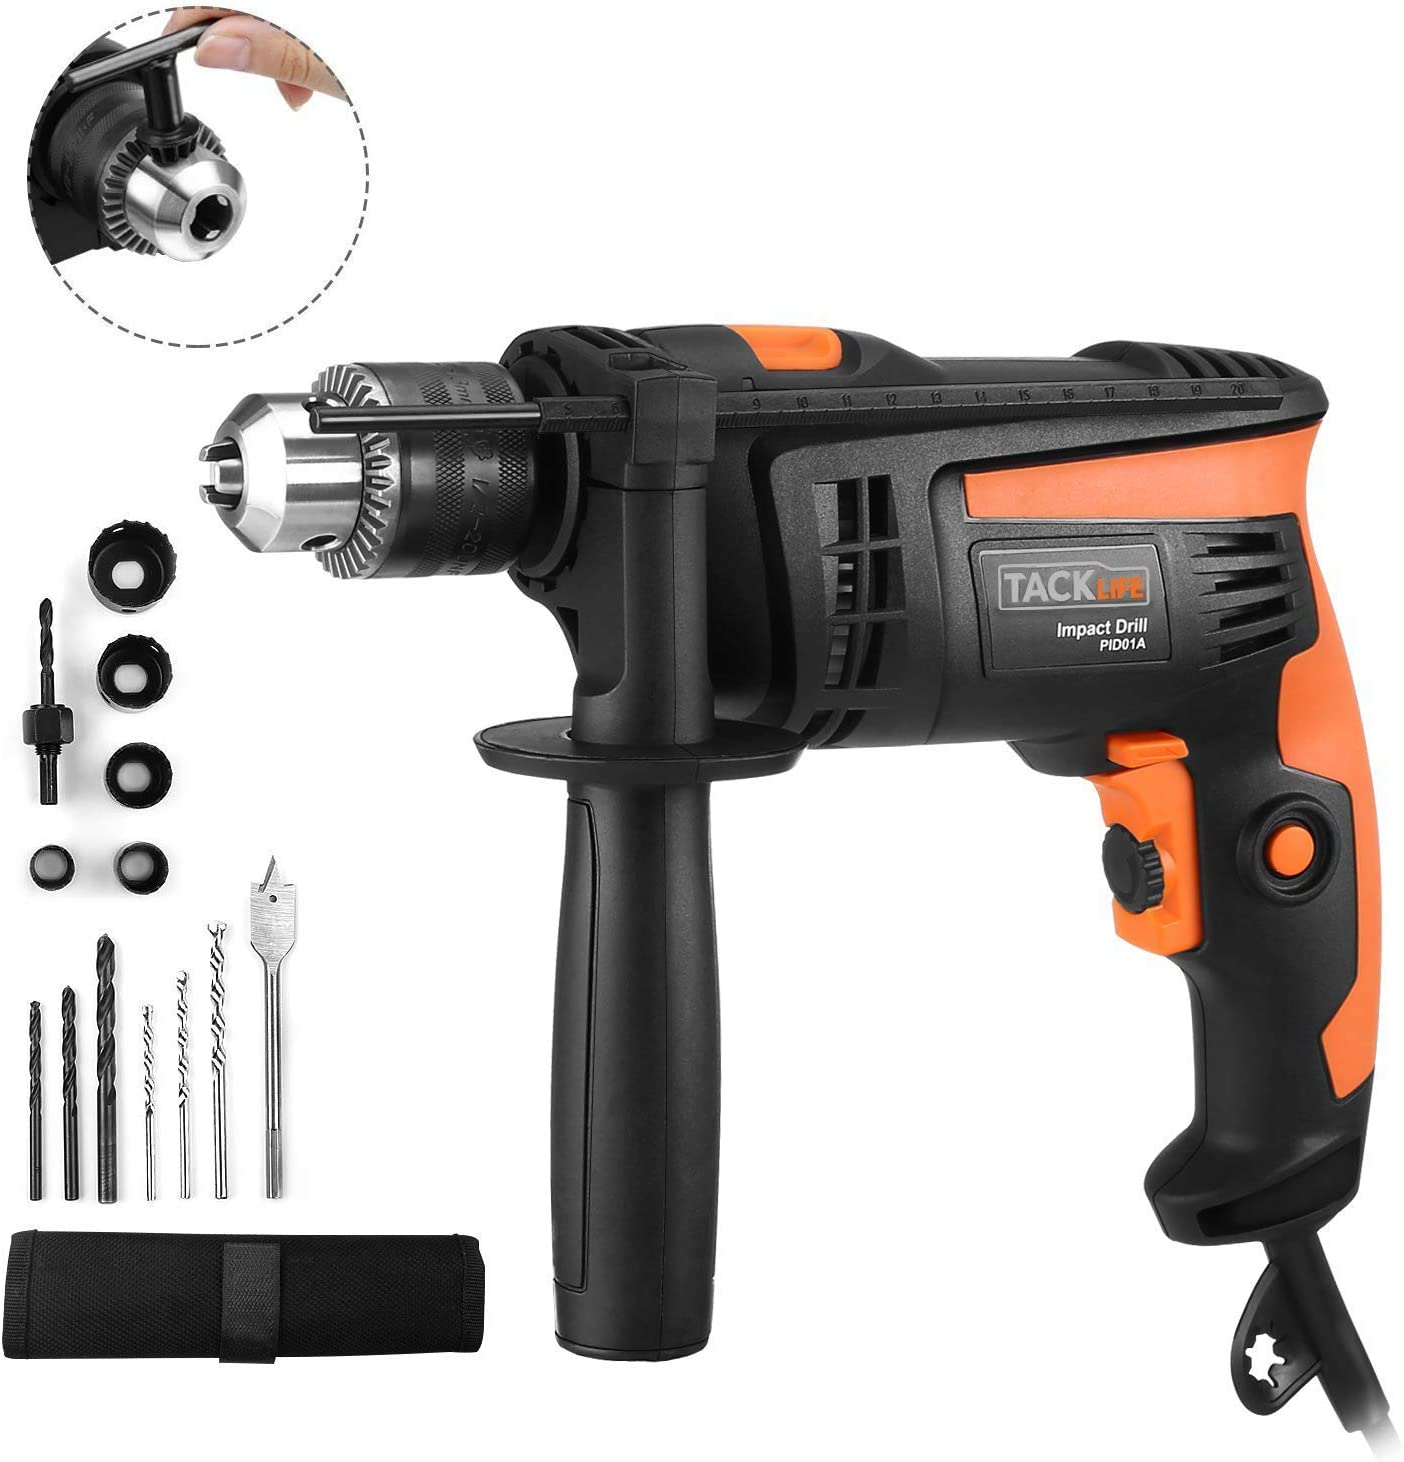 Tacklife Hammer Drill 2800RPM